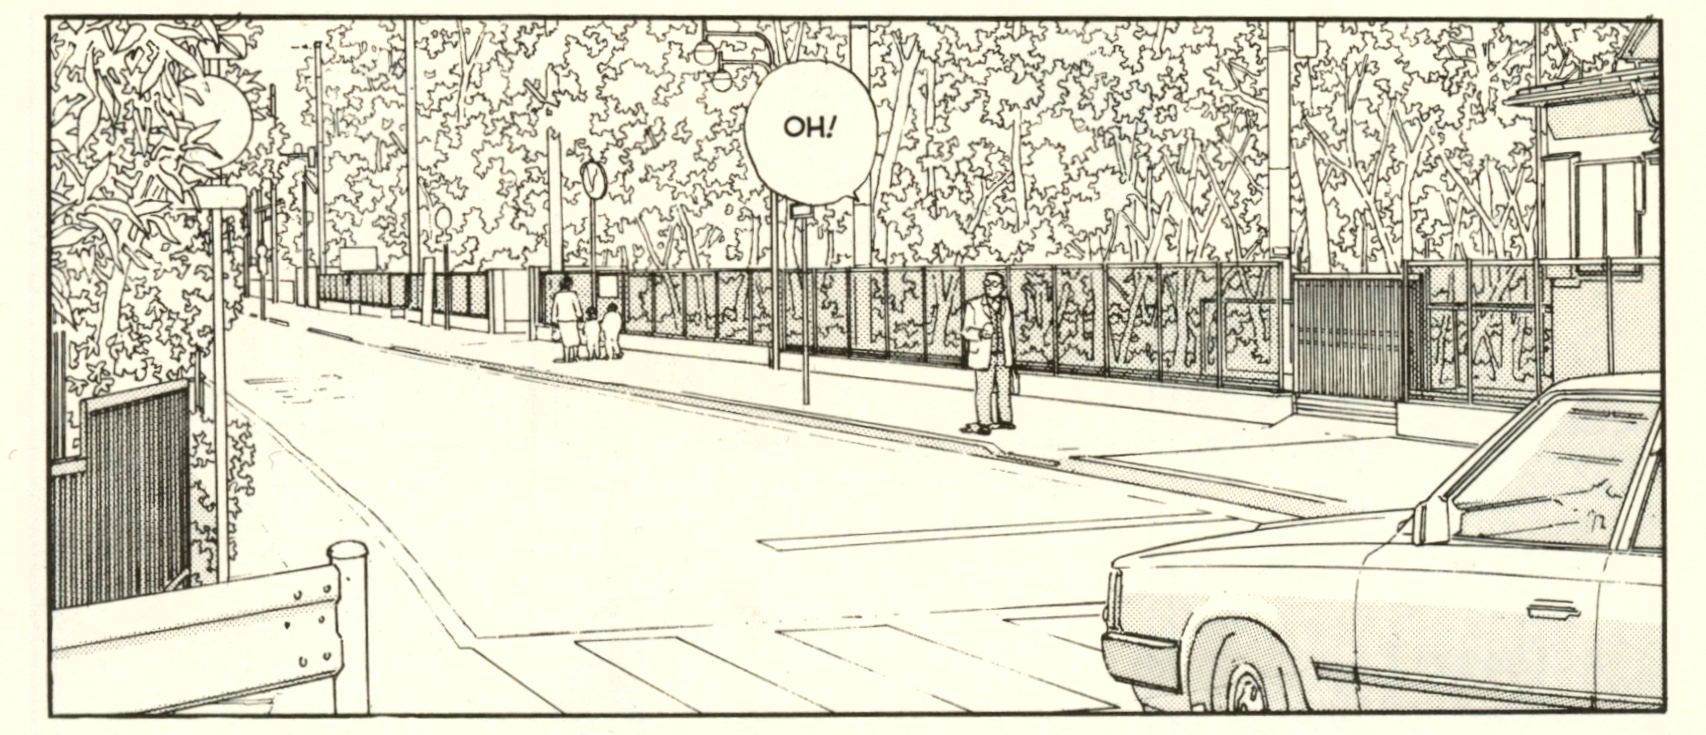 page 29 - panel 1